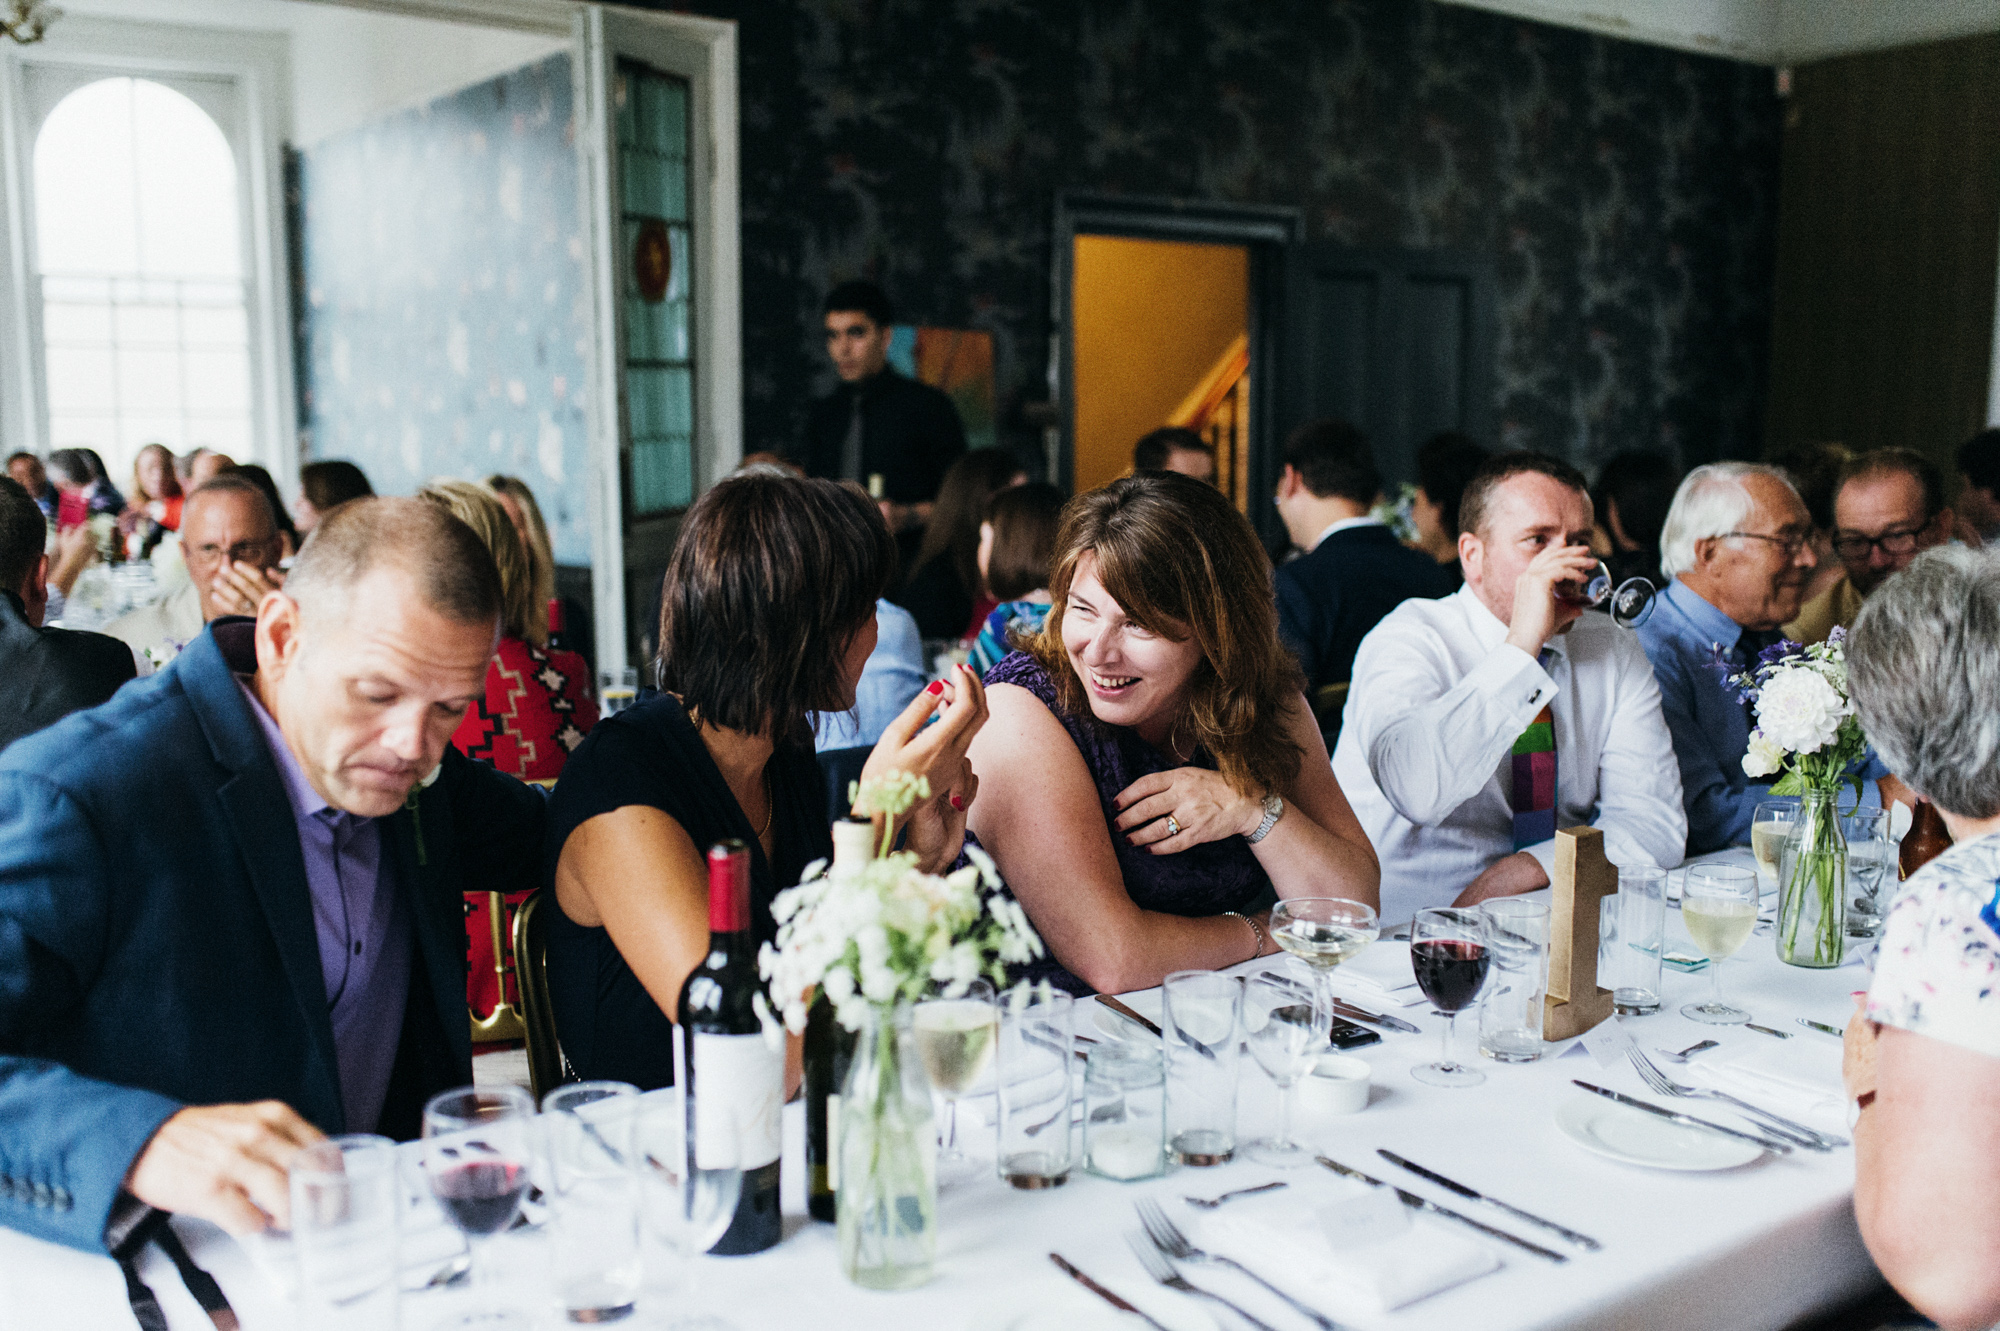 Laughing and drinking red wine - quirky creative gay friendly wedding photographer The Roost Dalston London wedding photographer © Babb Photo